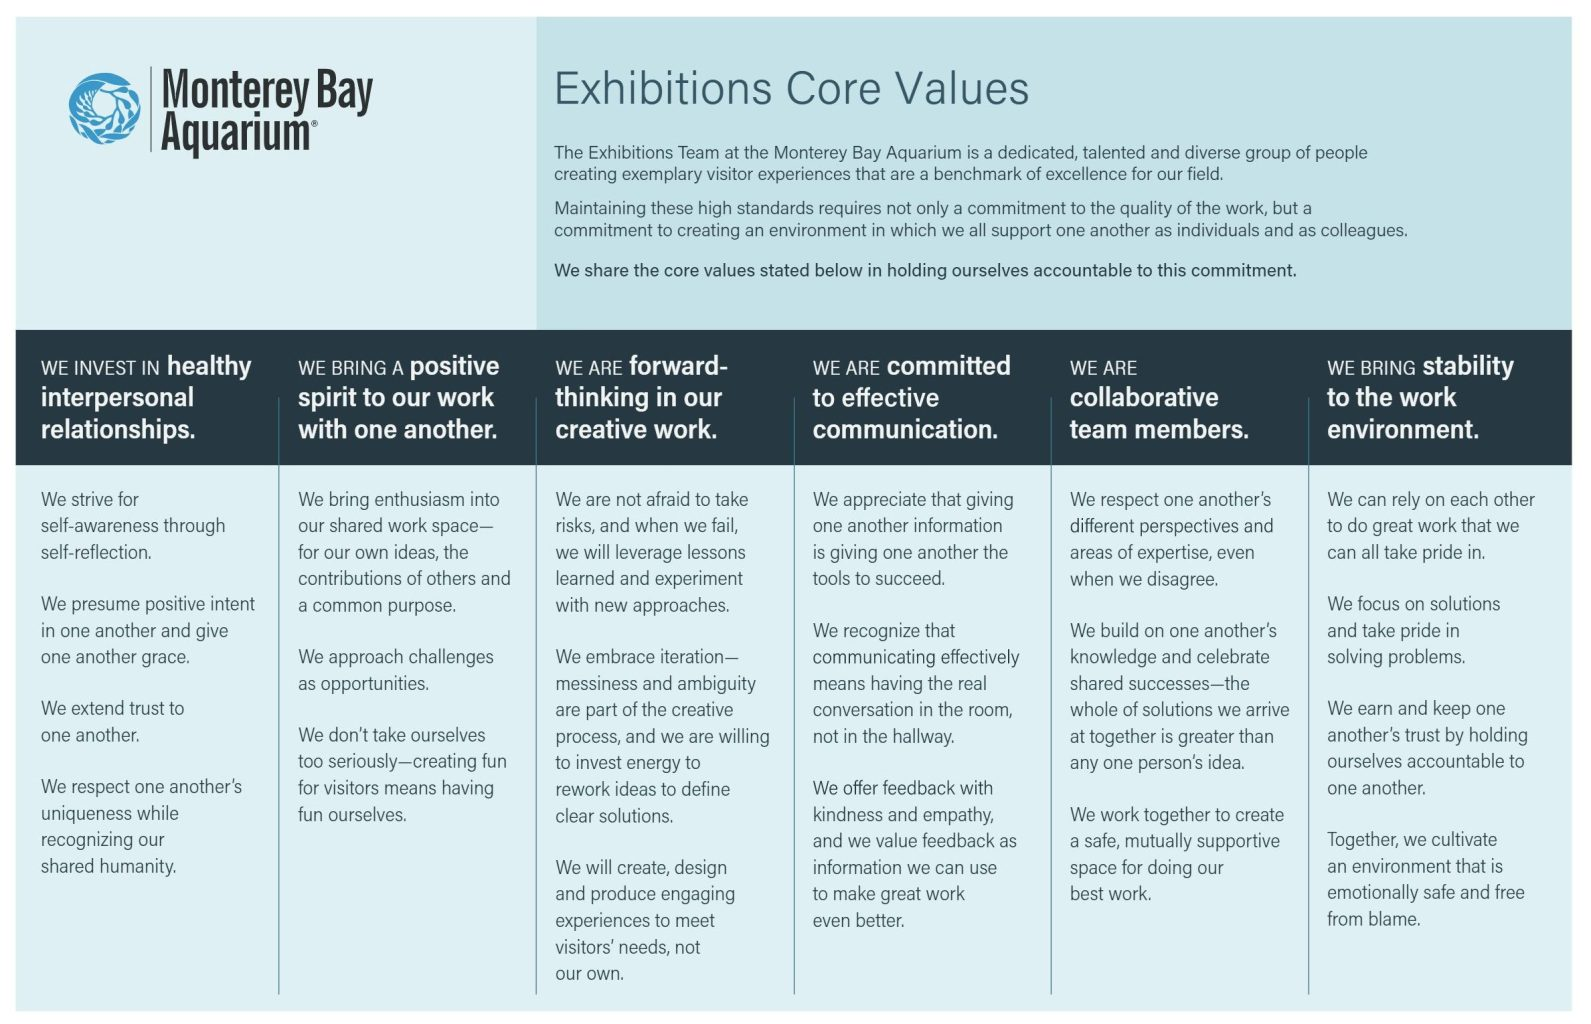 """A chart showing the finished core values for the exhibitions team: """"We invest in healthy interpersonal relationships,"""" """"We bring a positive spirit to our work with one another,"""" """"We are forward-thinking in our creative work,"""" """"We are committed to effective communication,"""" """"We are collaborative team members,"""" and """"We bring stability to the work environment."""""""